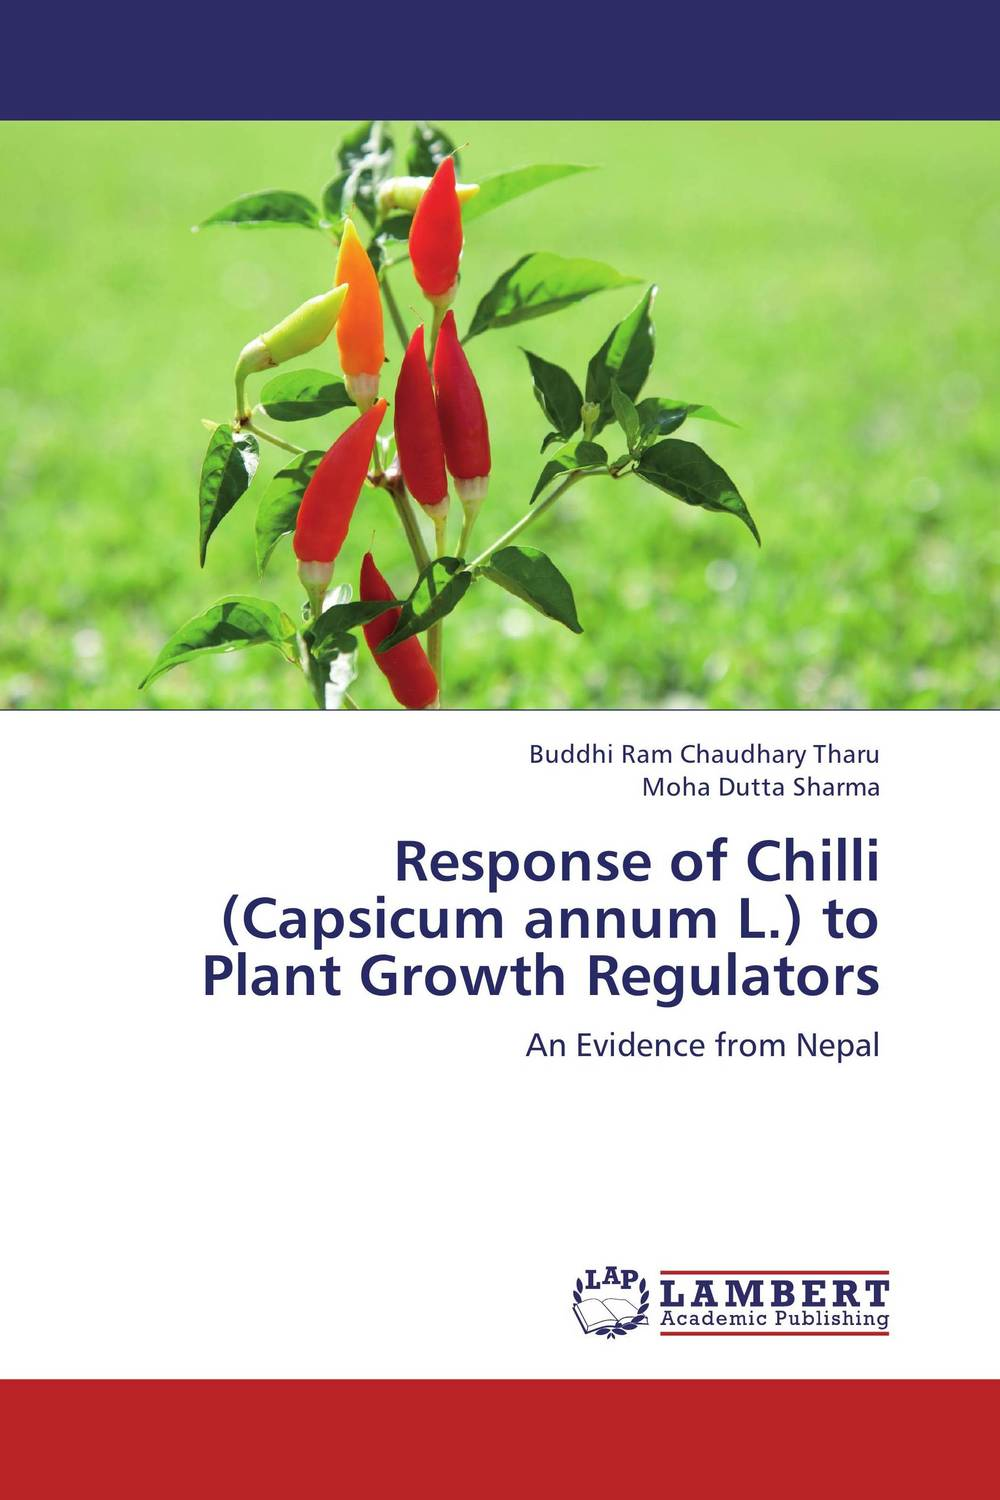 Response of Chilli (Capsicum annum L.) to Plant Growth Regulators makeup sponge blender blending puff flawless powder foundation make up sponge cosmetics maquiagem pinceaux de maquillage